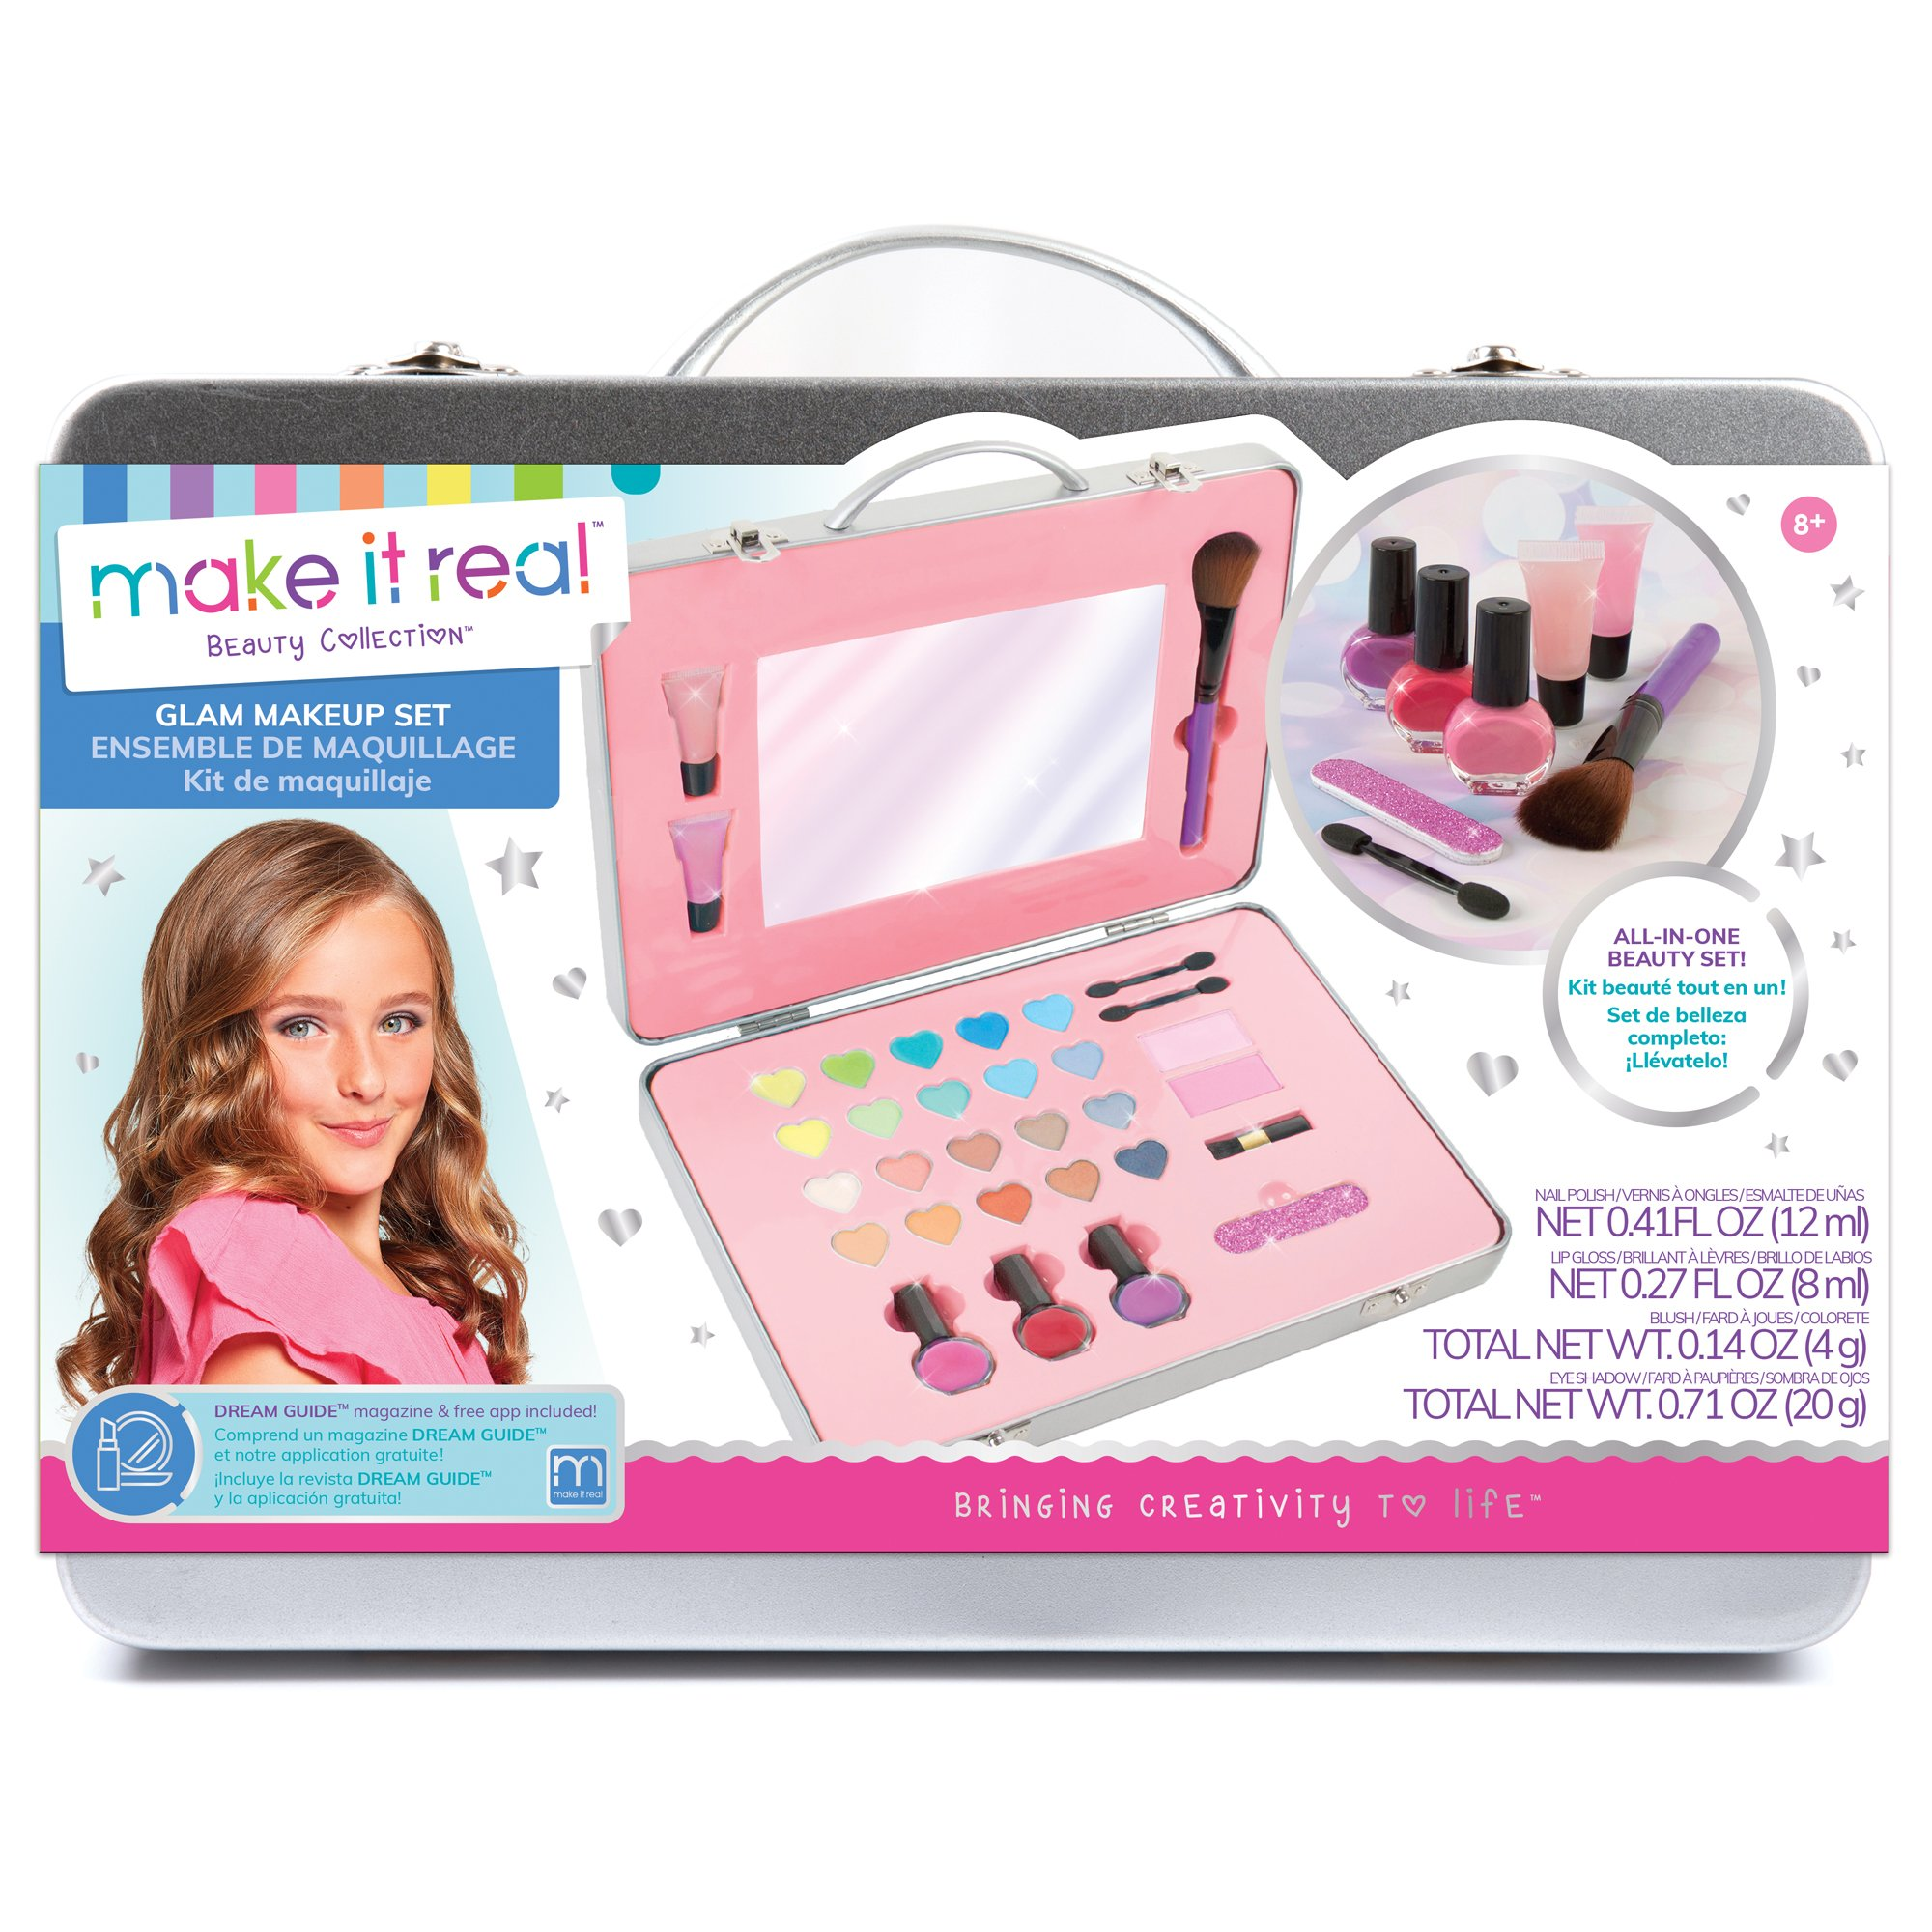 Make It Real - All-in-One Glam Makeup Set. Girls Makeup Kit is a Perfect Starter Cosmetic Set for Kids and Tweens. Includes Case, Mirror, Eye Shadow, Blush, Brushes, Lip Gloss, Nail Polish and More by Make It Real